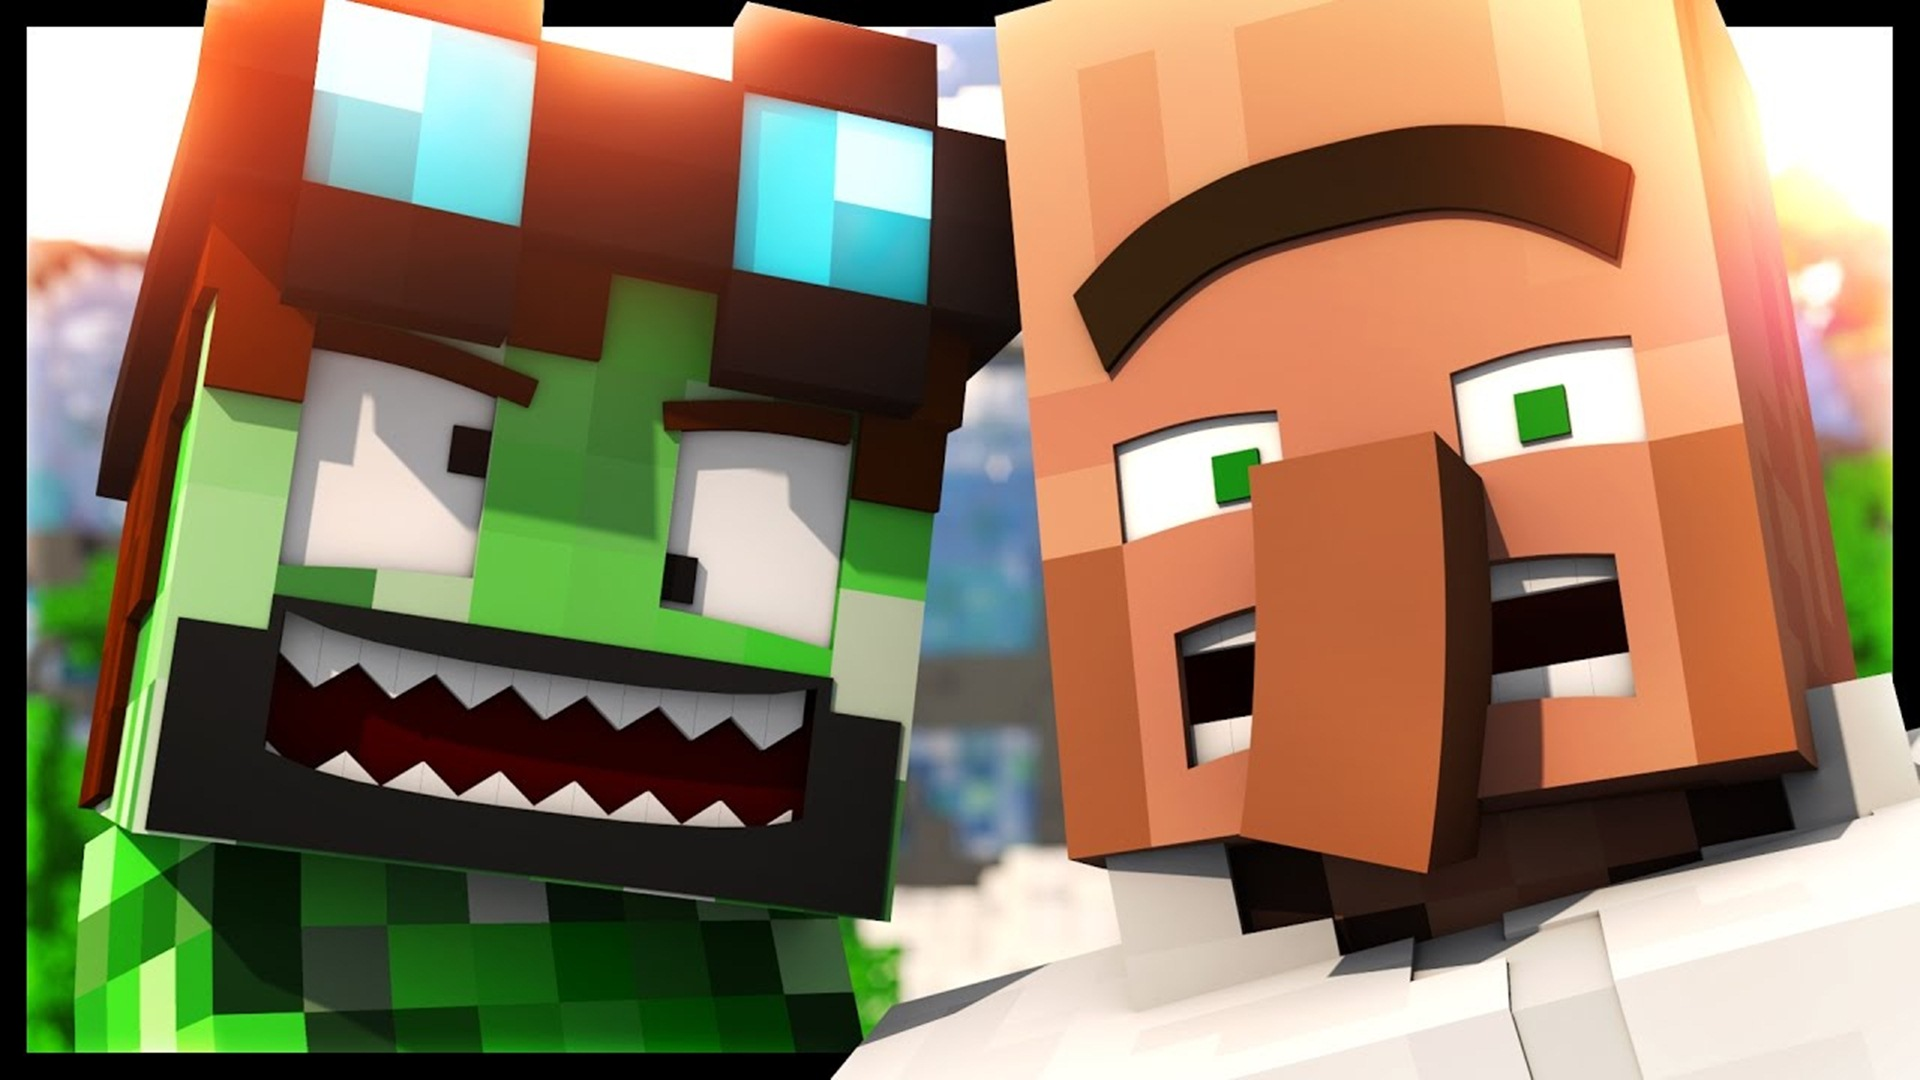 minecraft wallpaper,video game software,animation,minecraft,fictional character,games